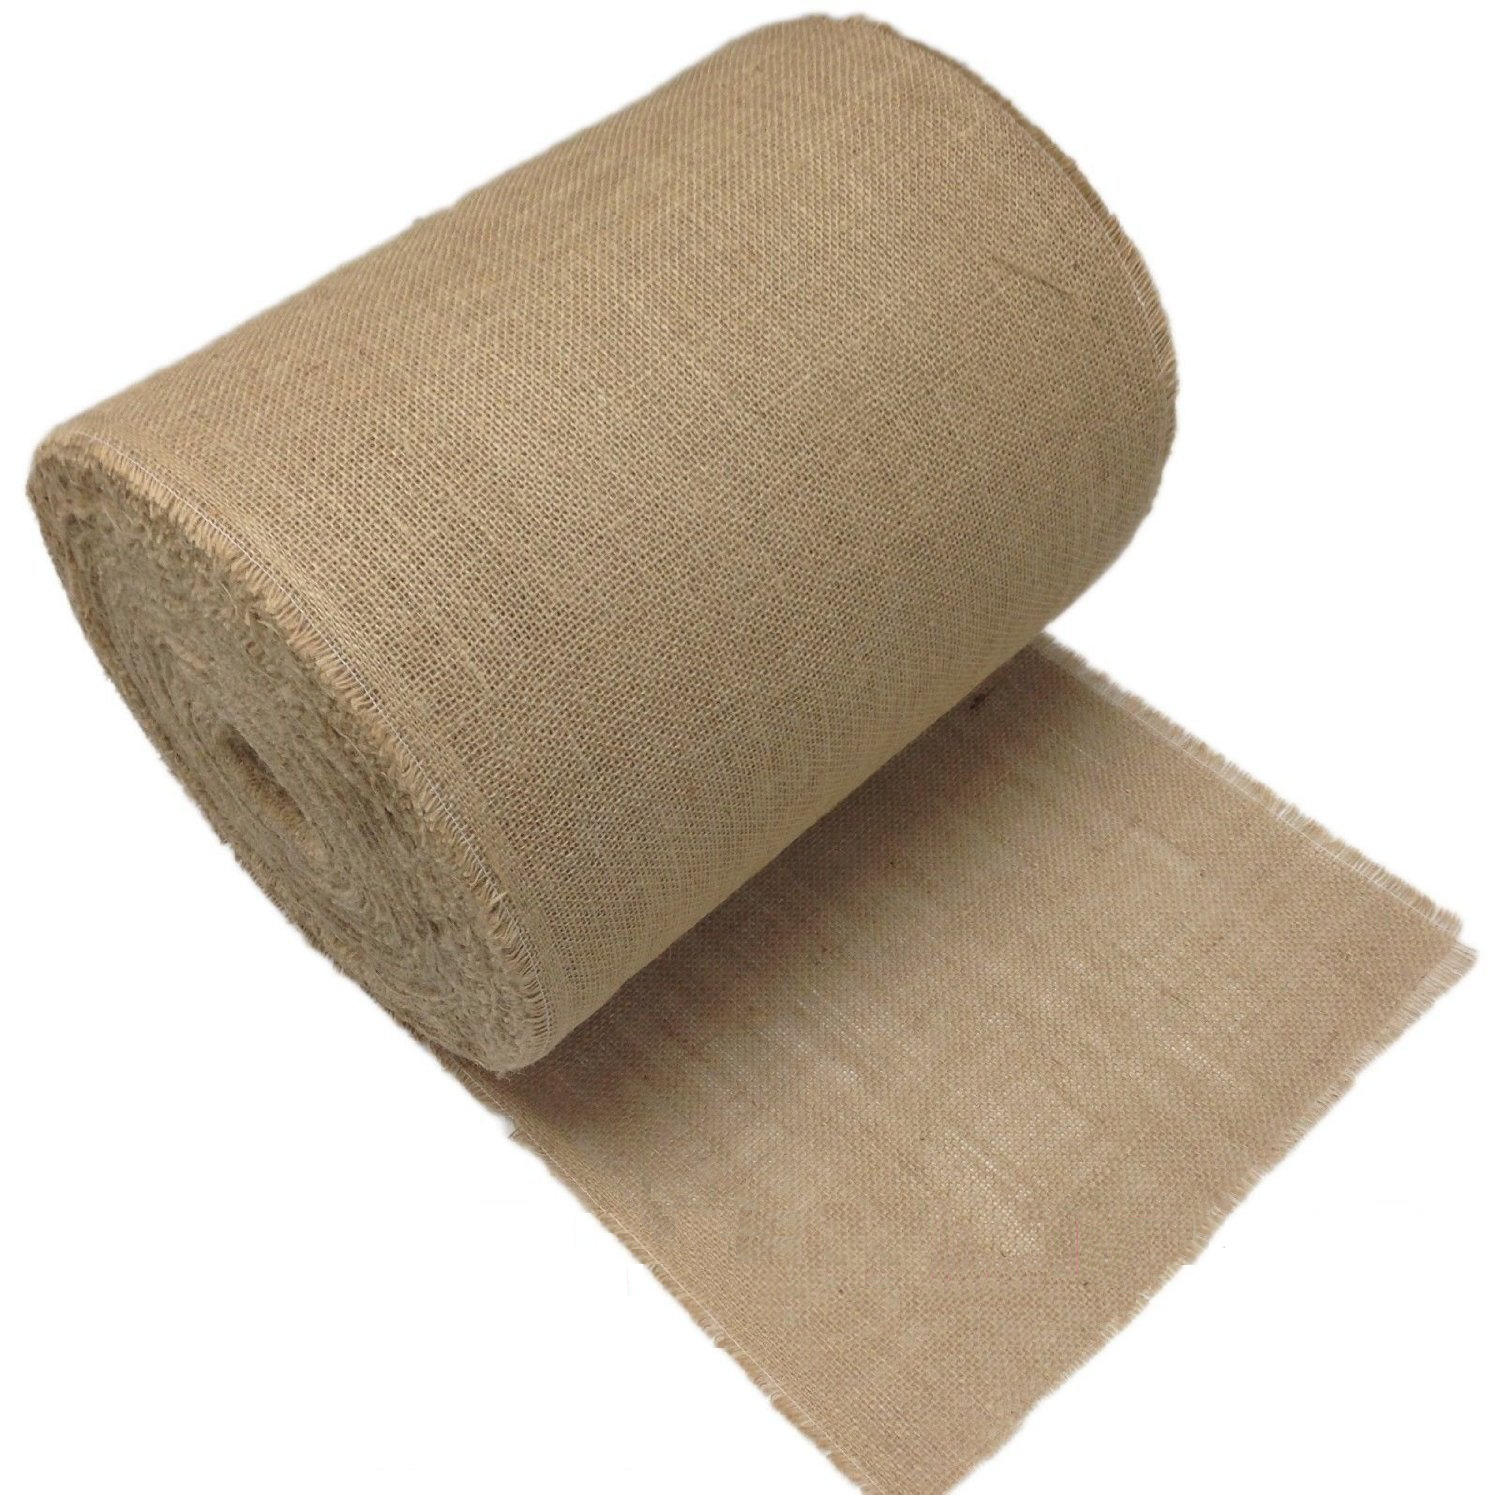 "14"" 50 Yard Sewn Edge Burlap Roll with Frayed Edges"